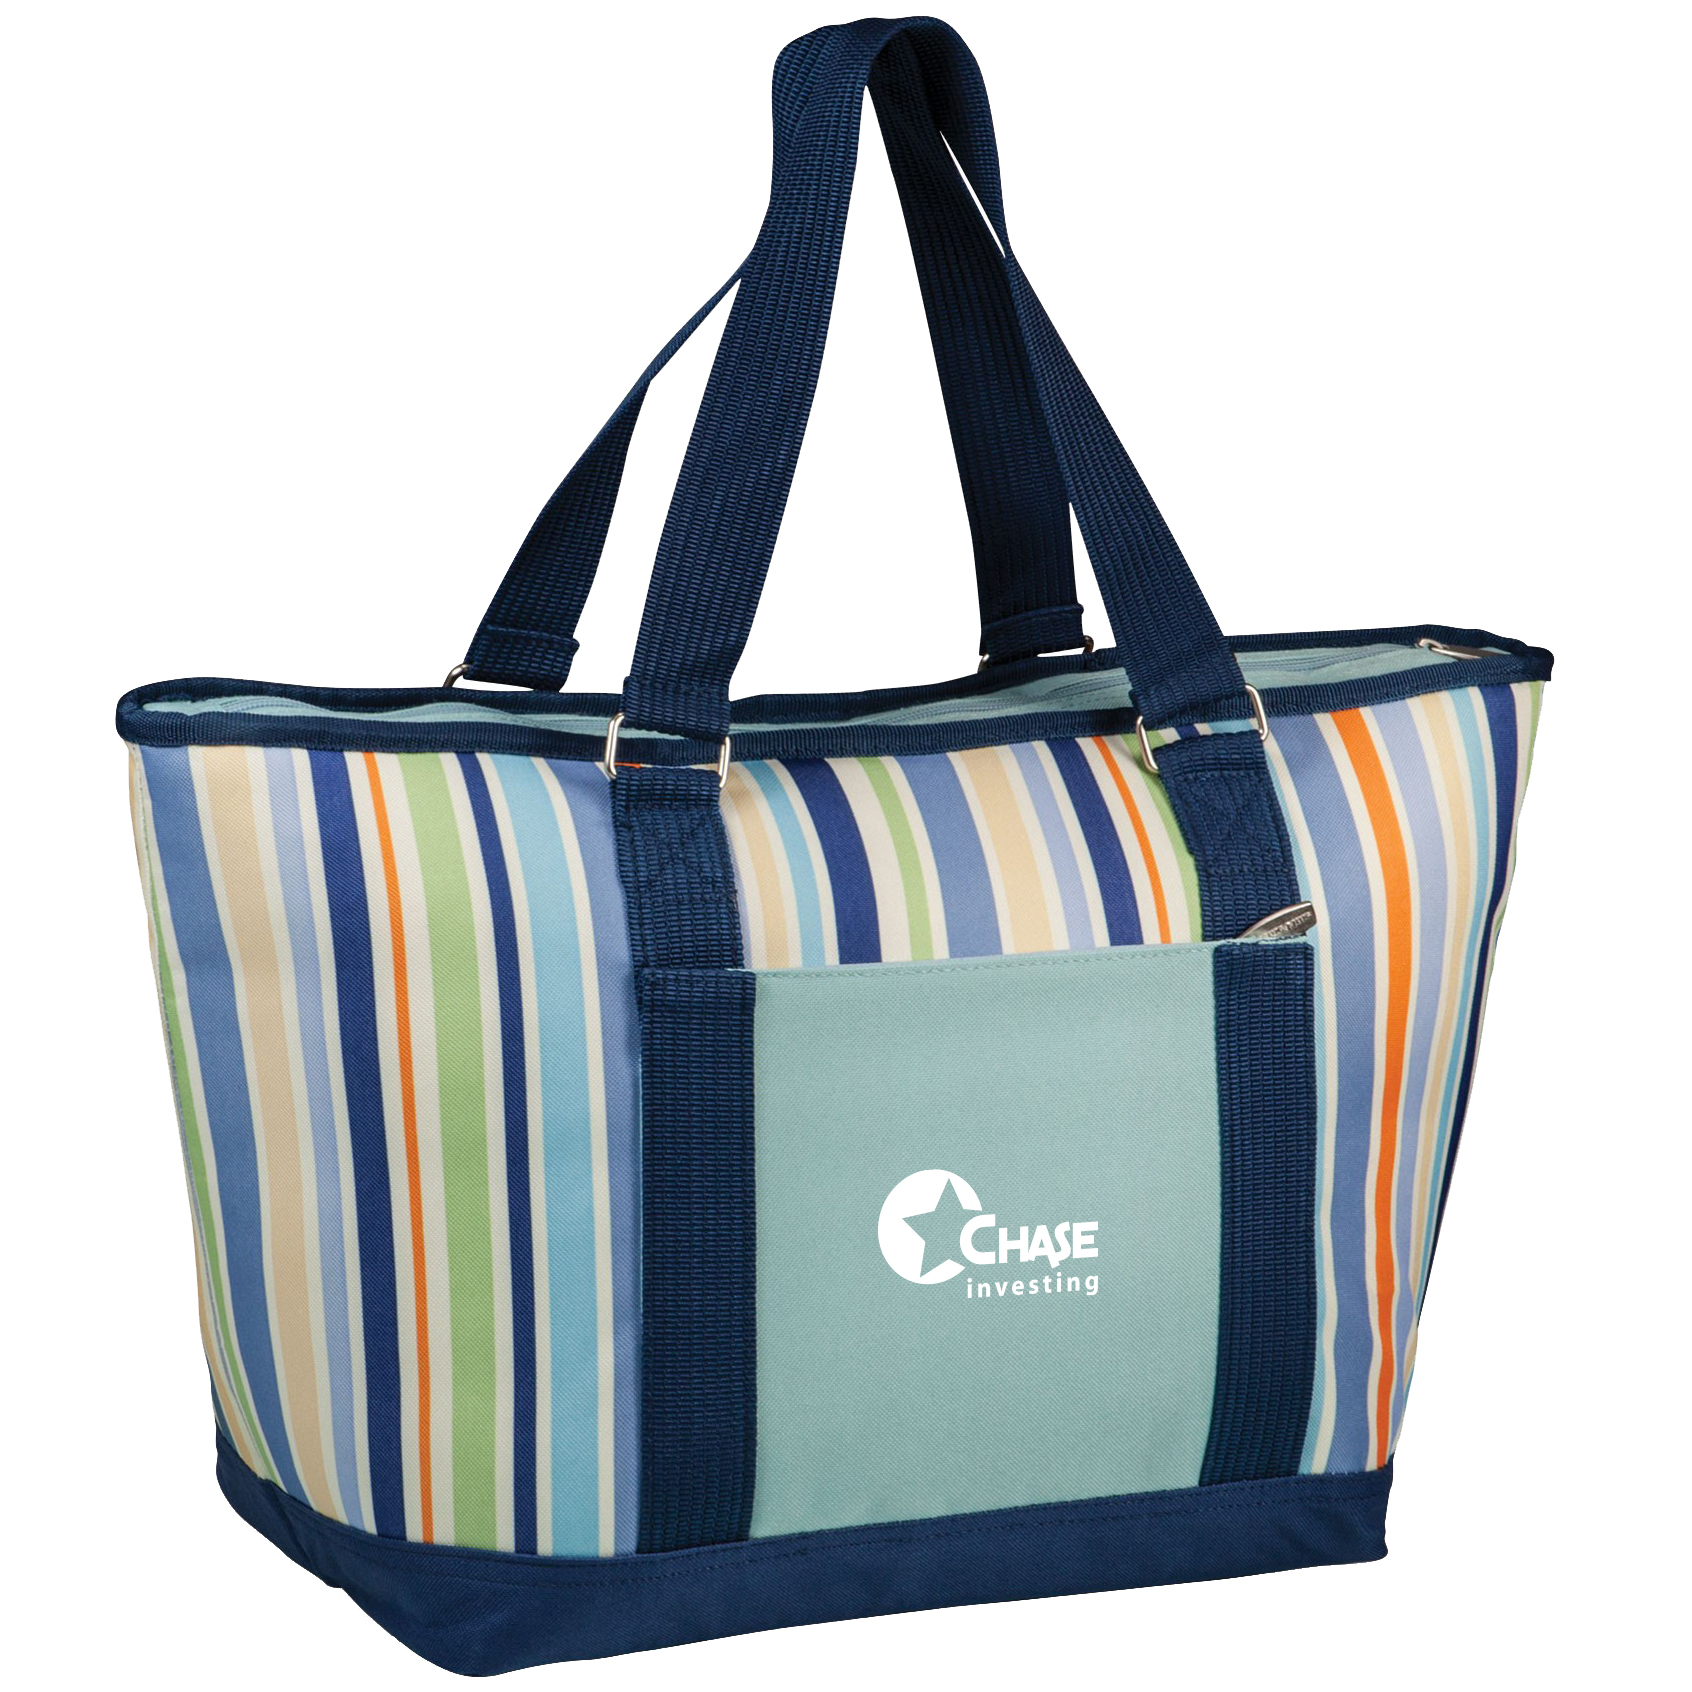 Bauer Cooler Tote, Fashion Colors